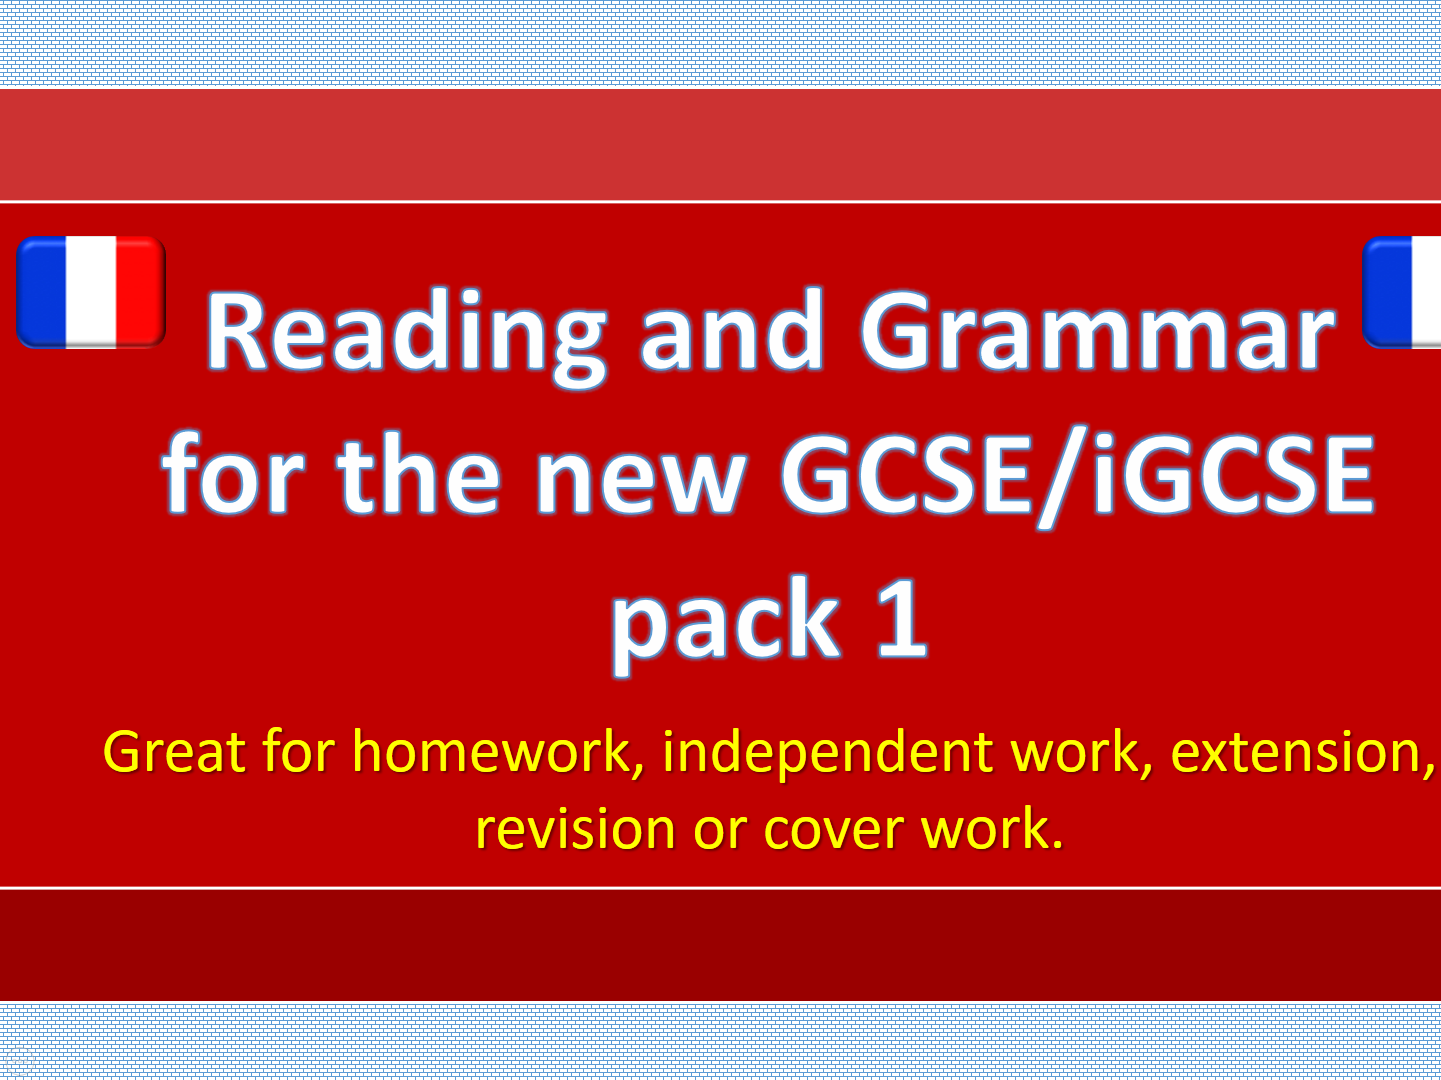 NEW GCSE / iGCSE Reading and Grammar French bundle